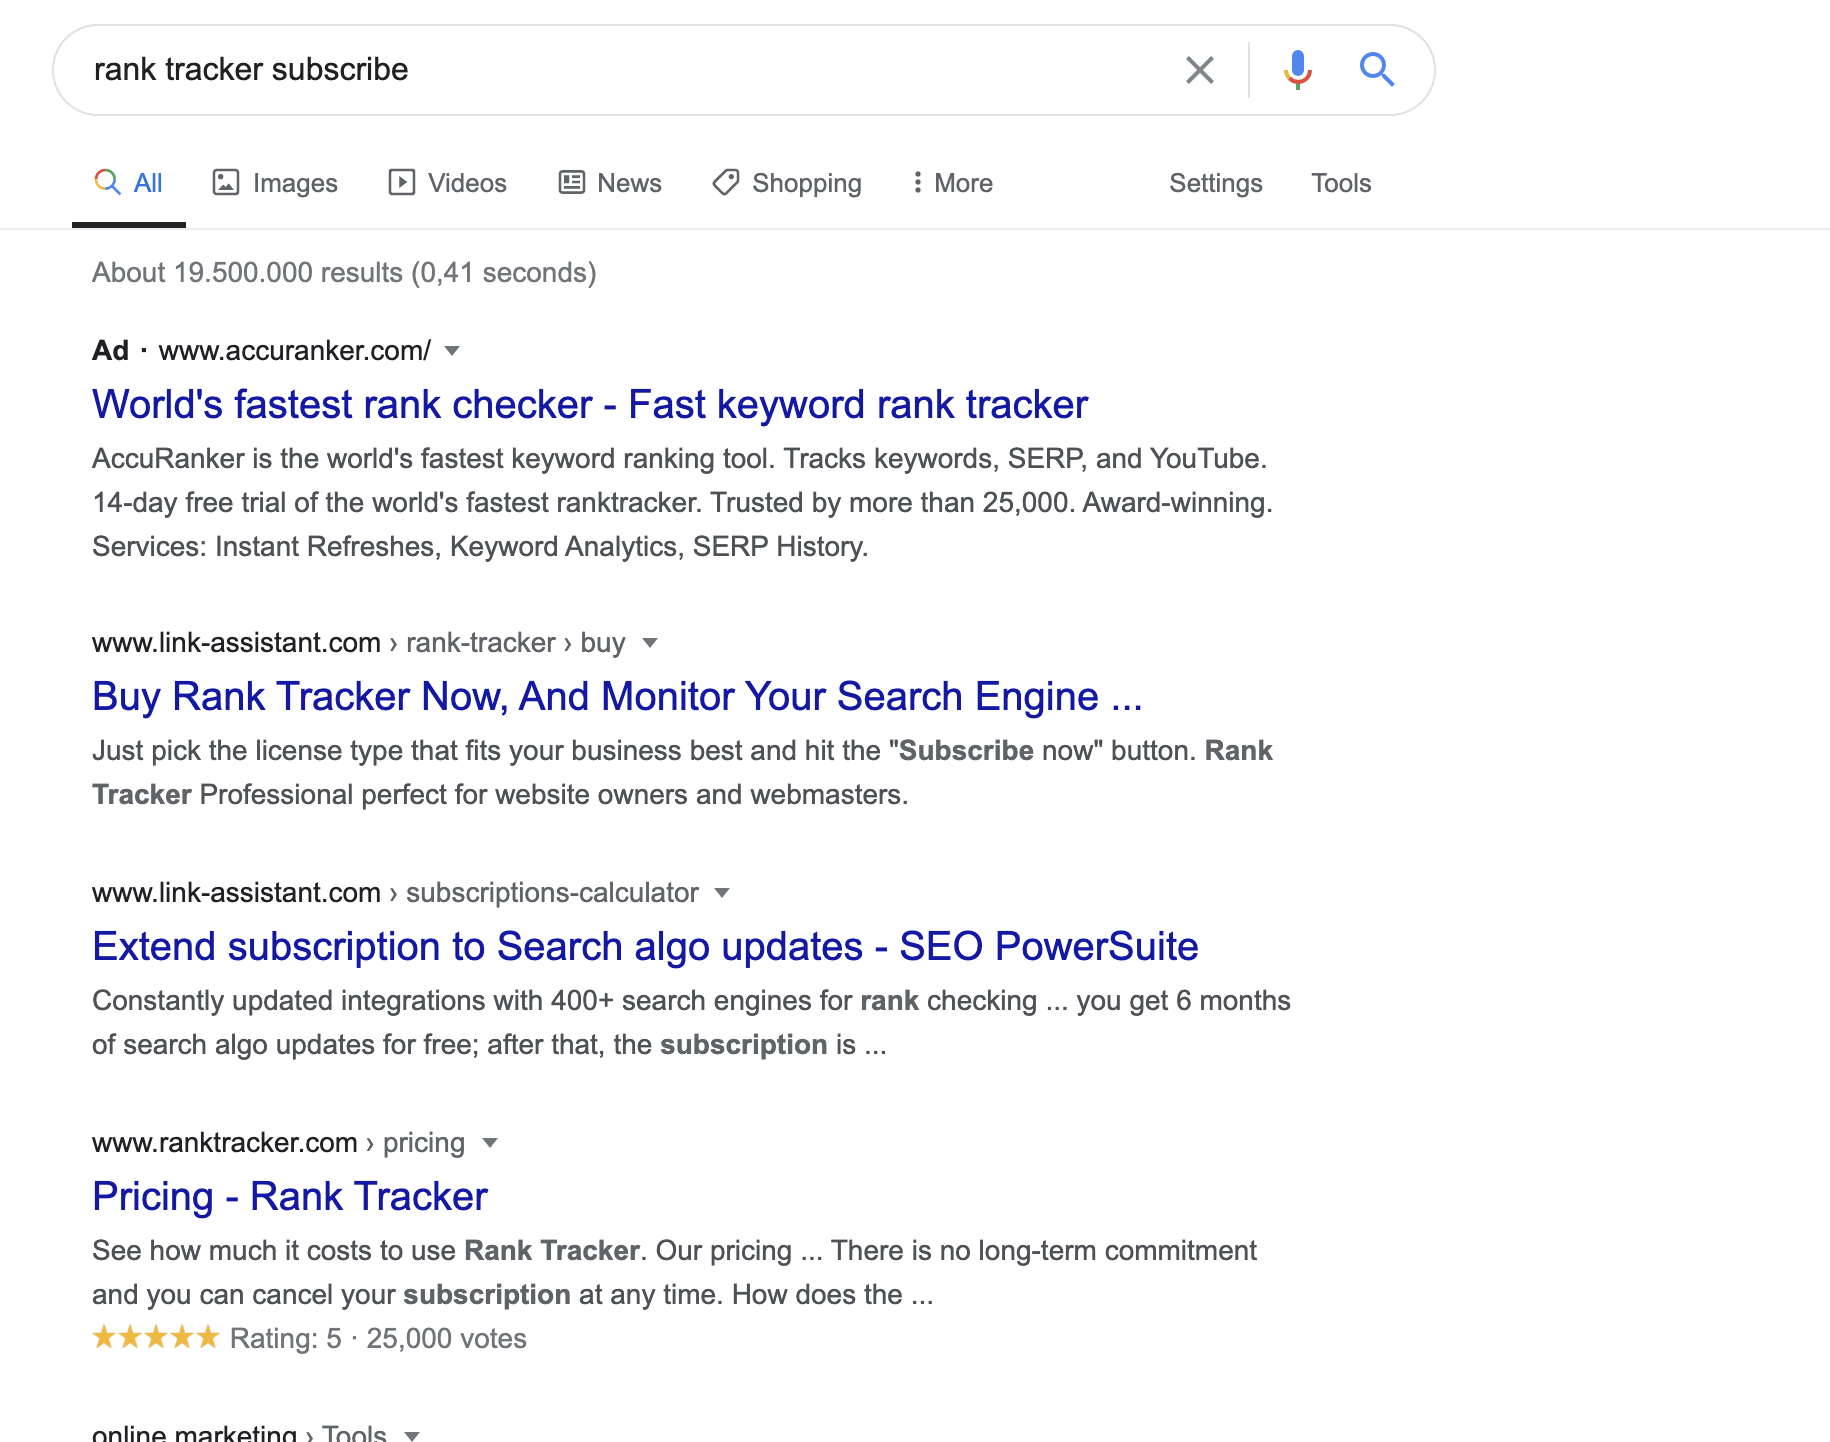 Search Intent : Rank Tracker